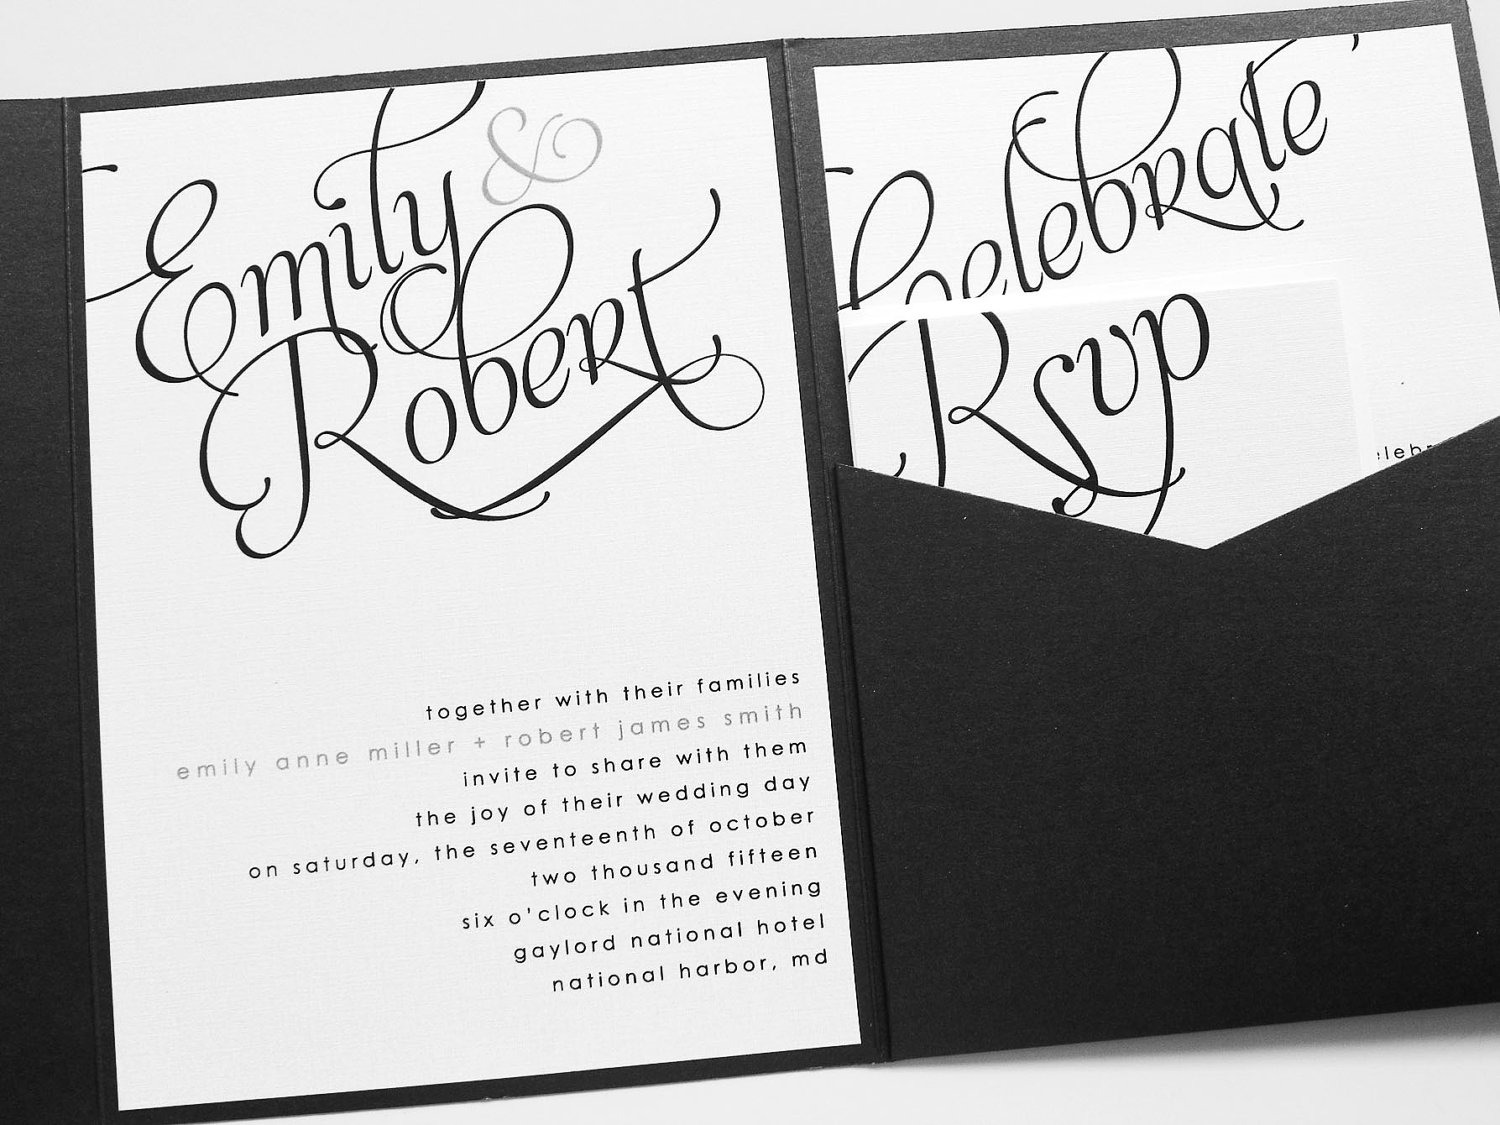 Wedding Invitation font (the font on the top half of the ima